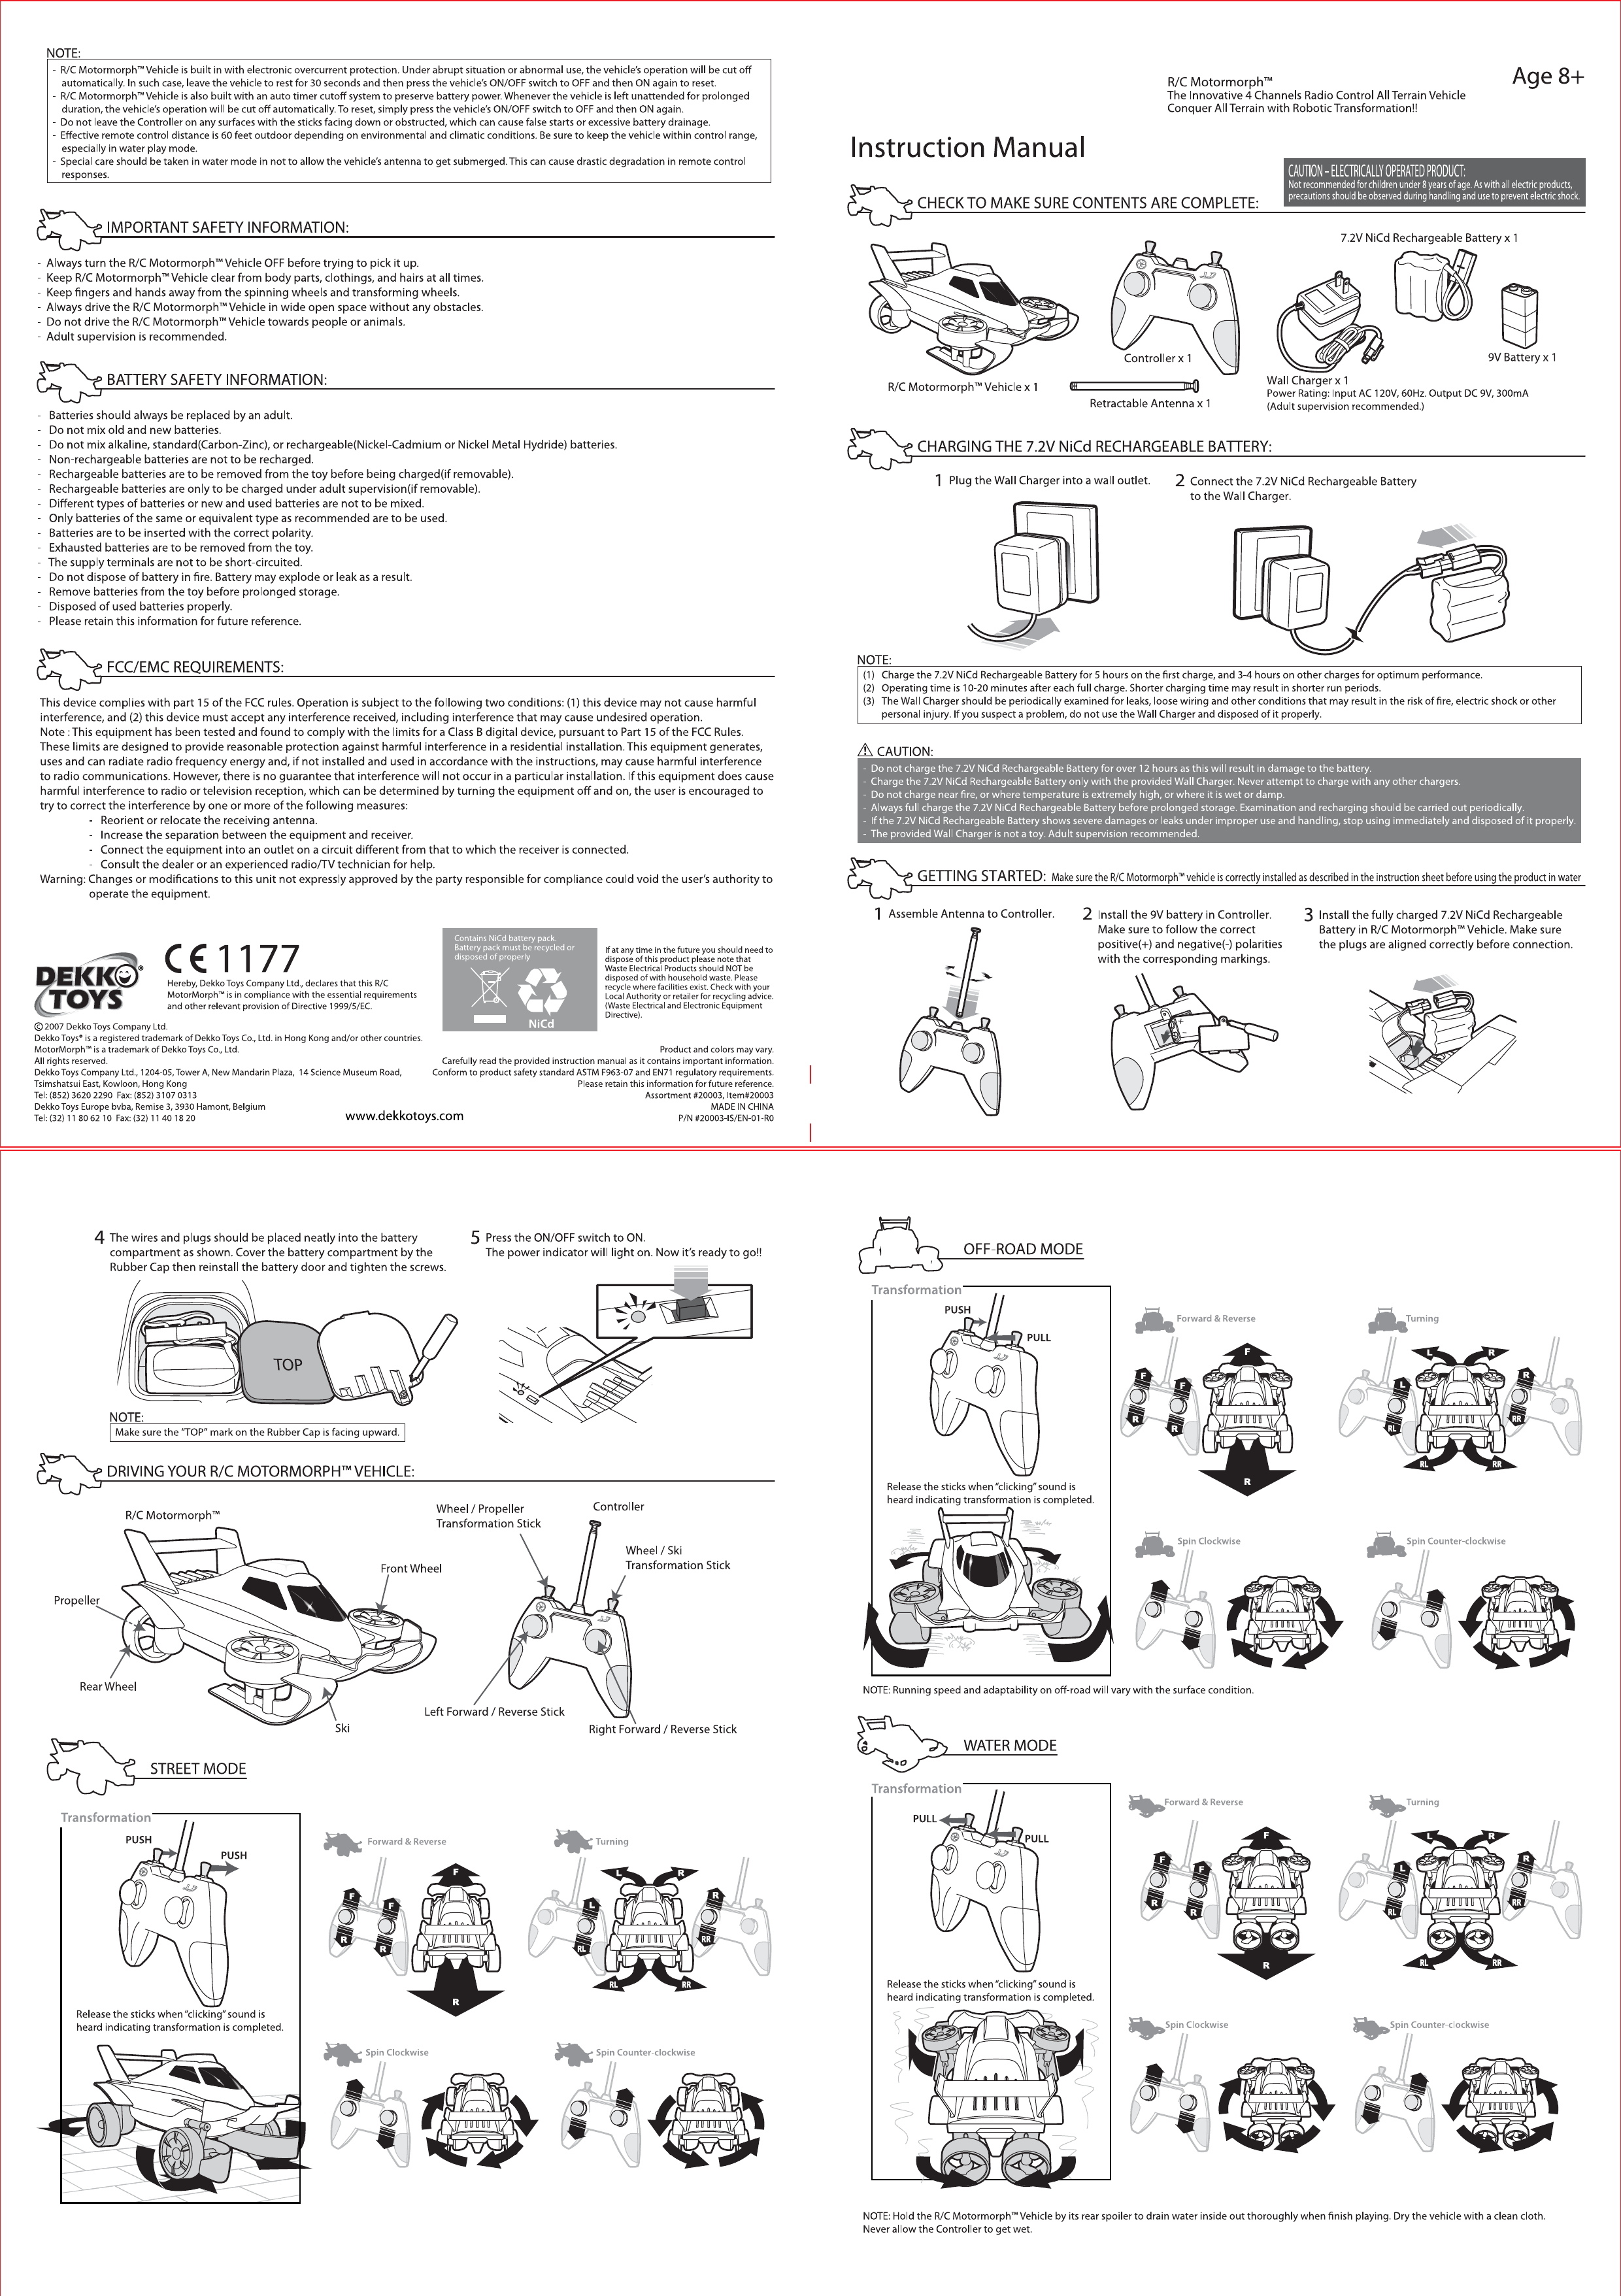 http www.sargentlock.com documents instruction_sheets.php